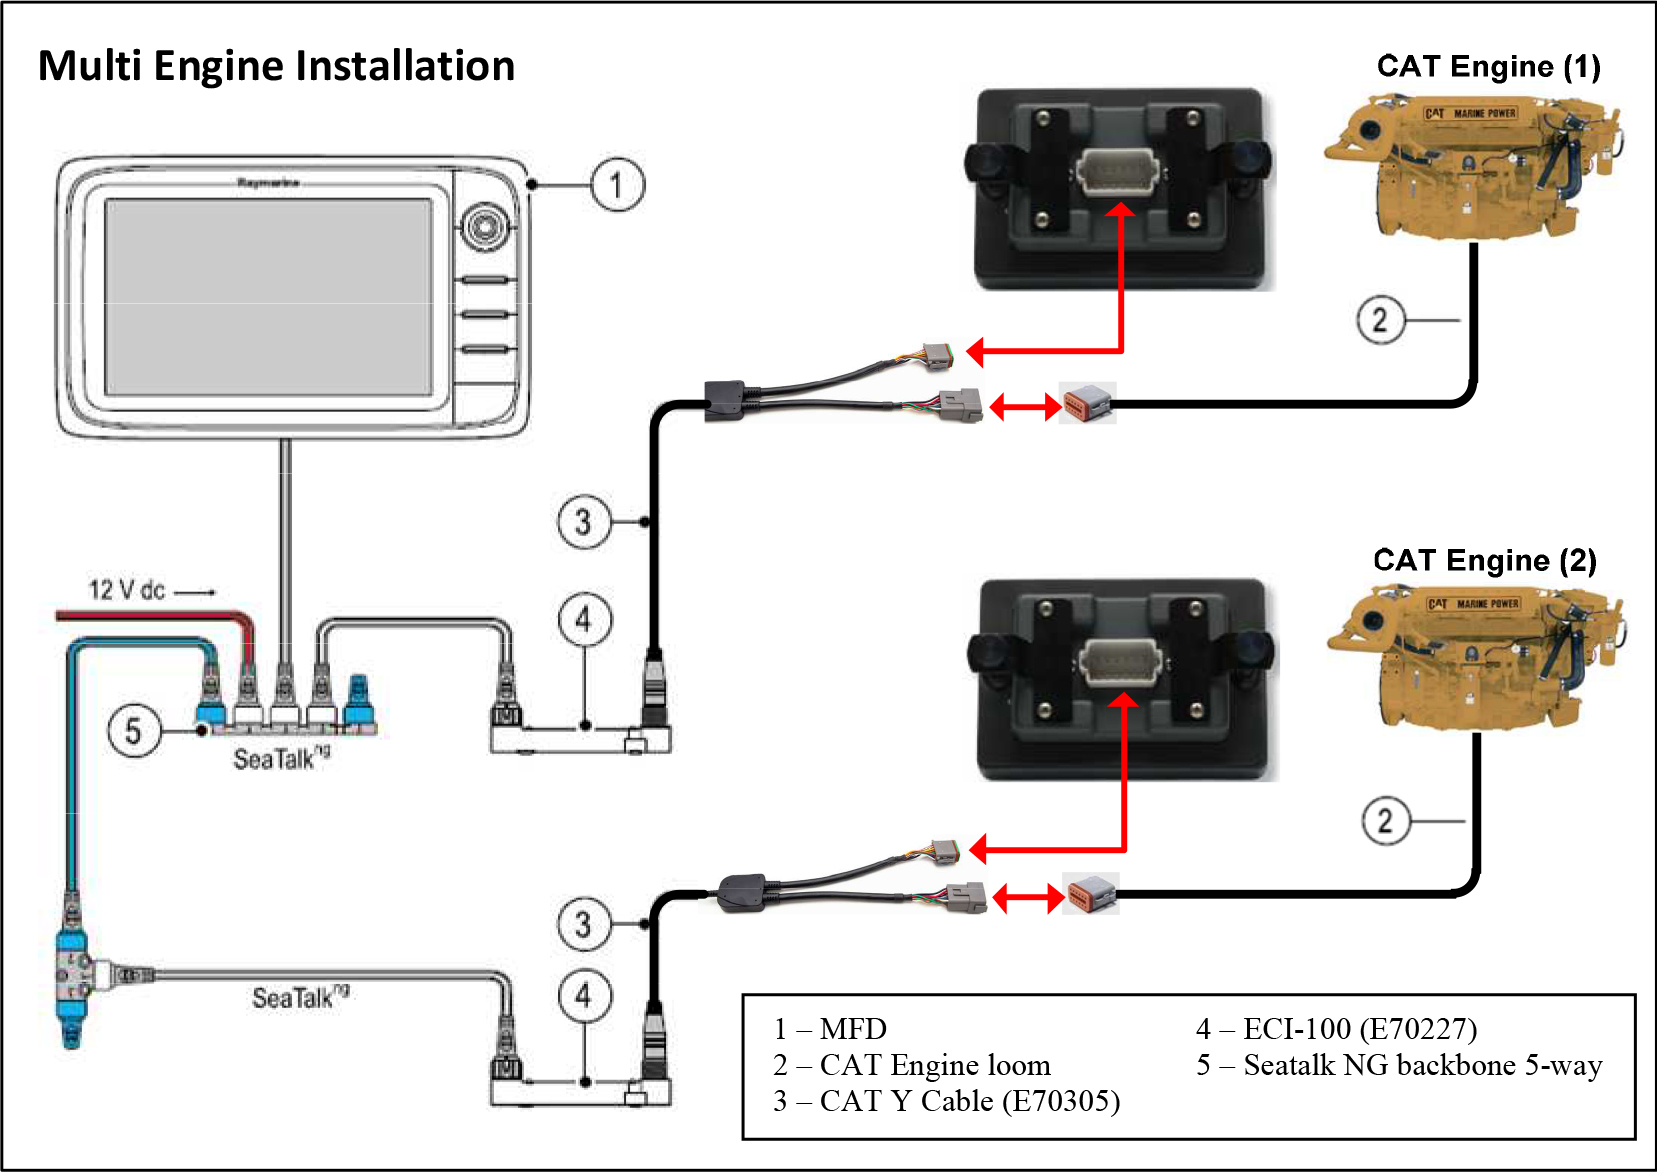 Eci 100 Engine Interfacing Small Gas Components Diagram Caterpiller Multi Installation Raymarine